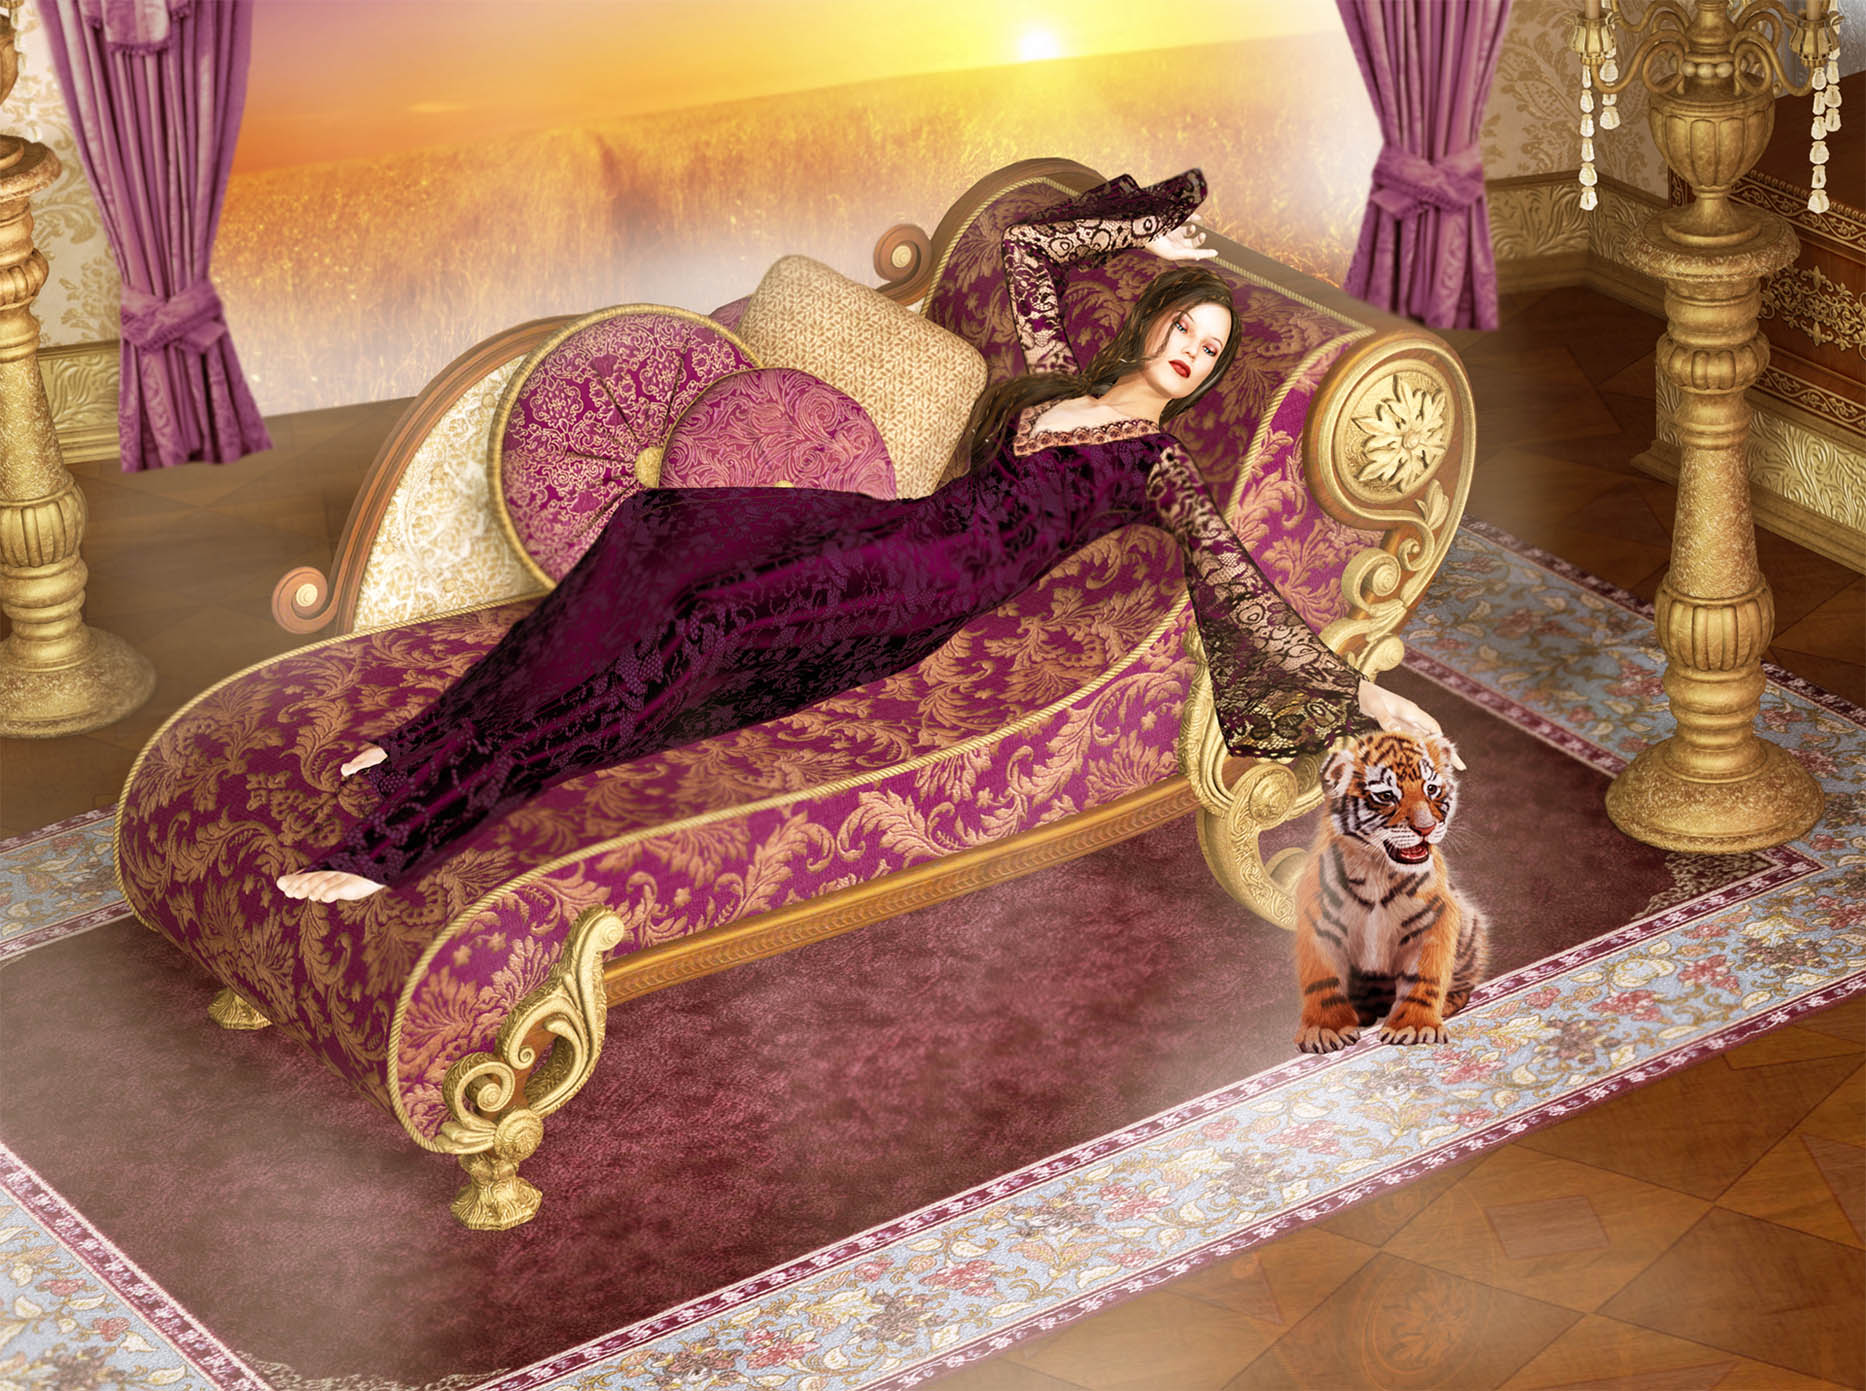 Regally Languid for all February Born!